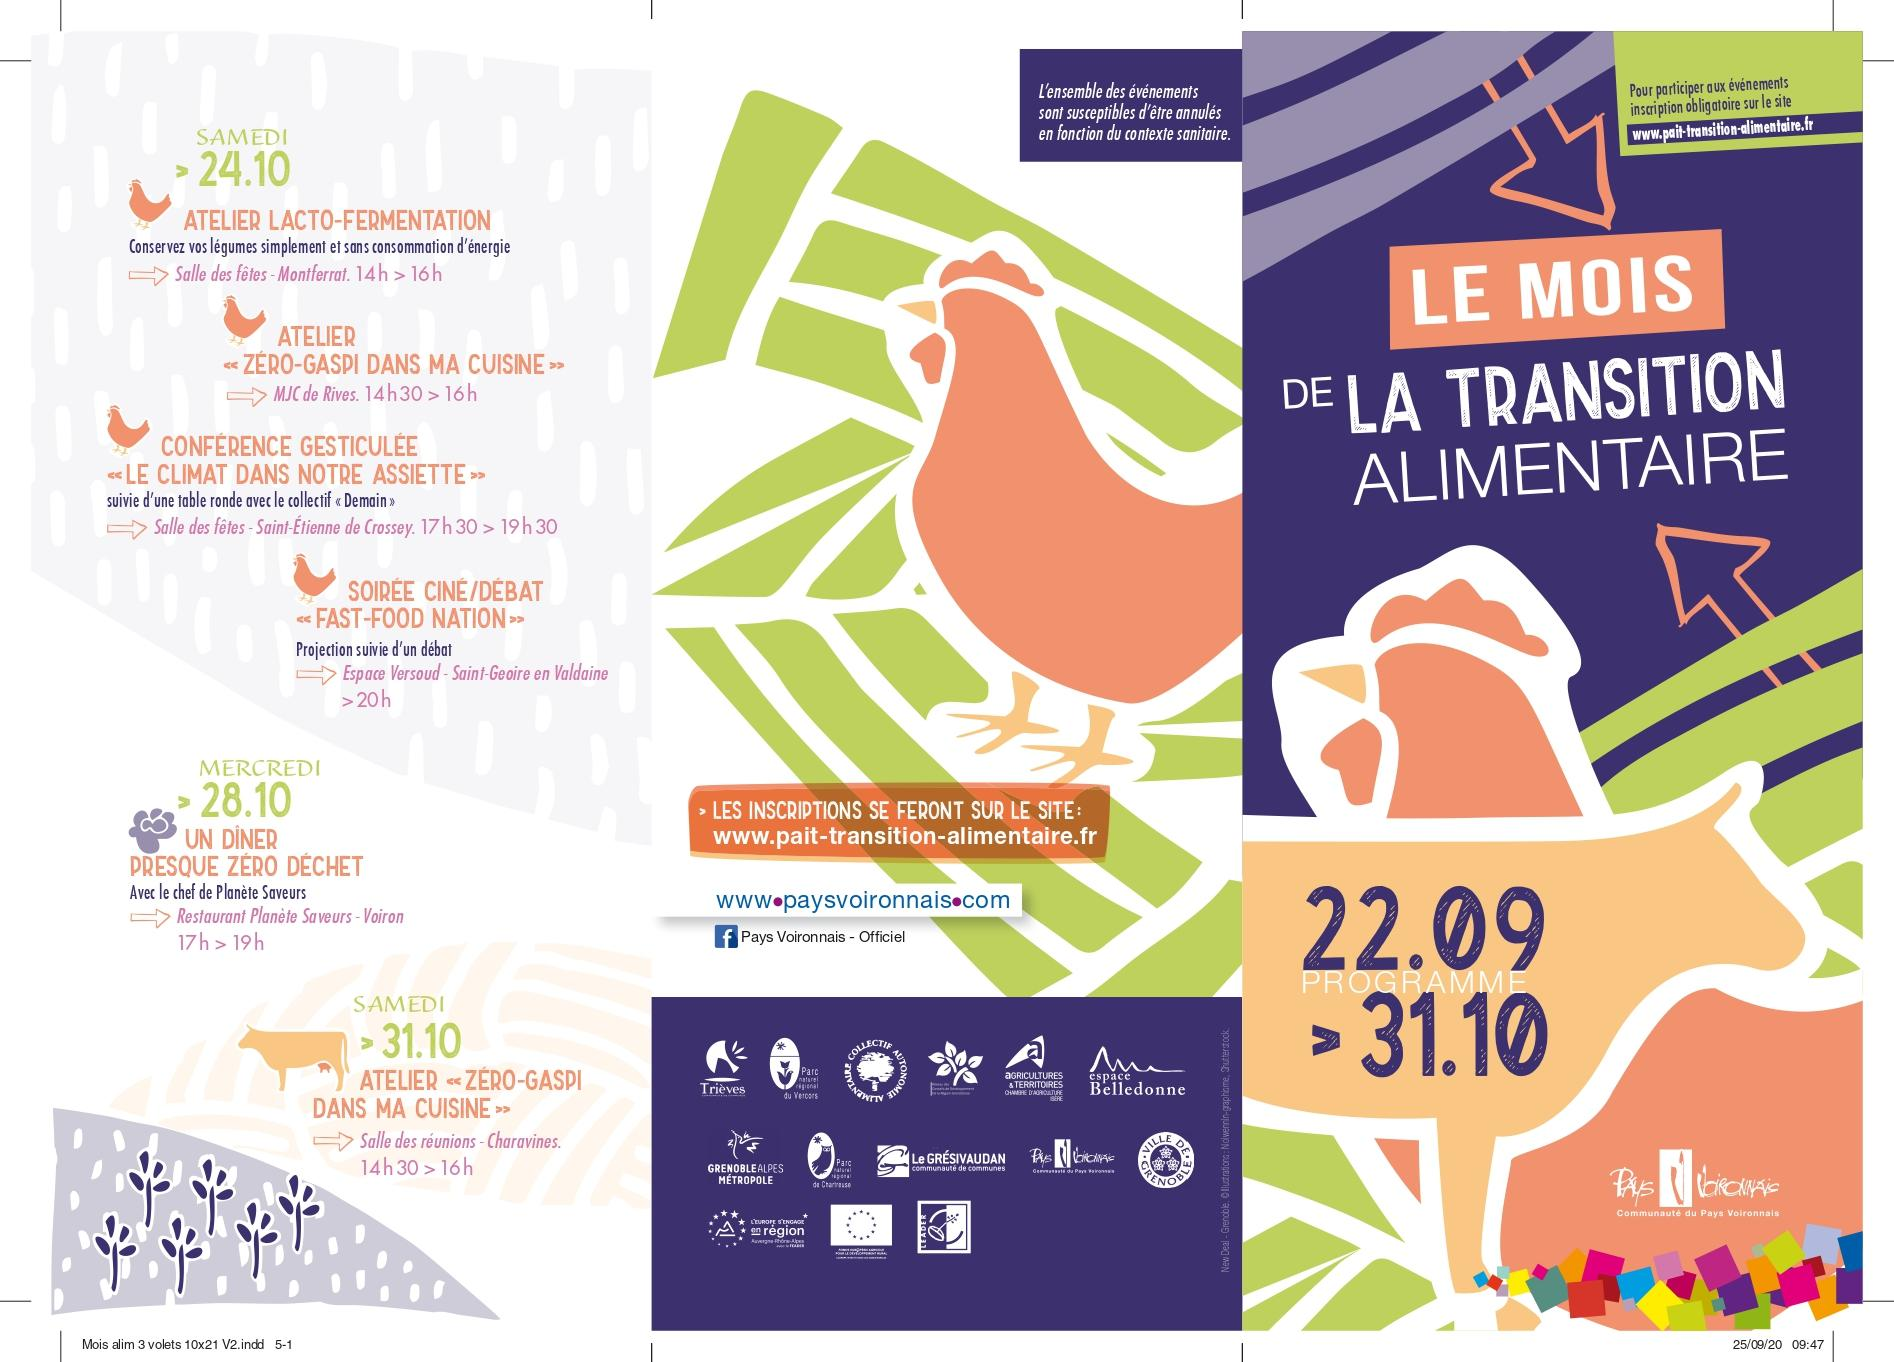 Programme mois transition alimentaire page 0001